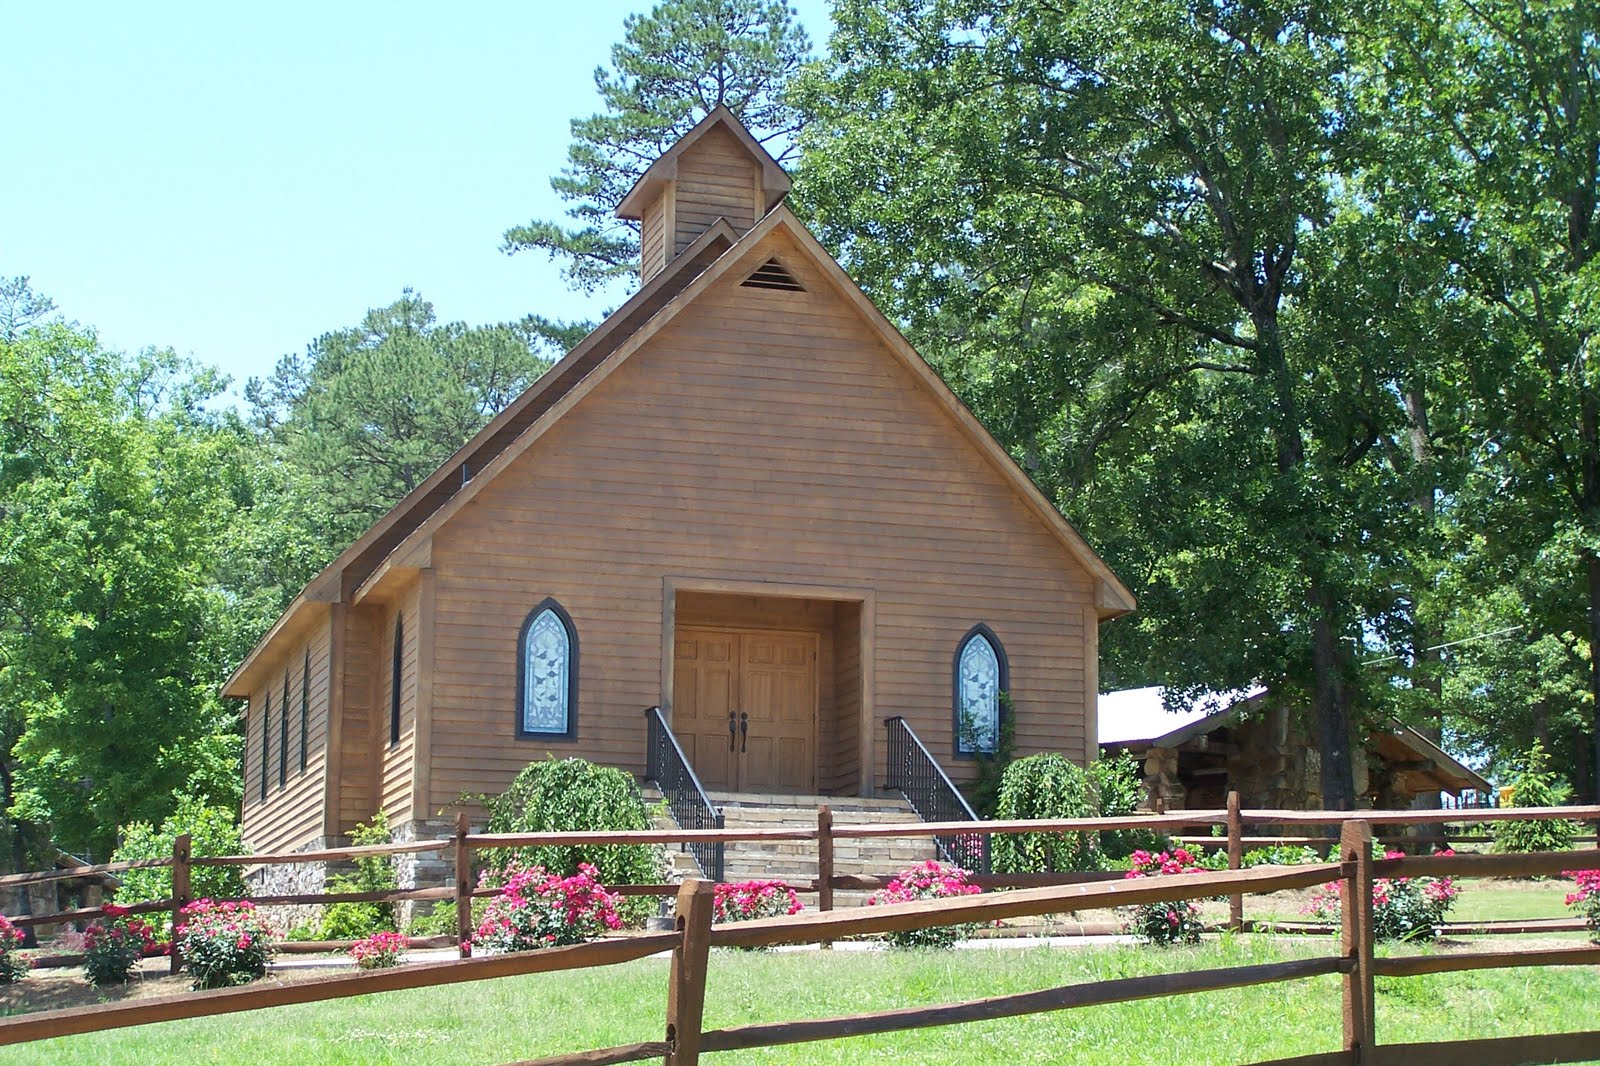 New Church They Use For Weddings At Noccalula Falls It Would Be A Beautiful Setting Wedding With The Not 50 Feet From